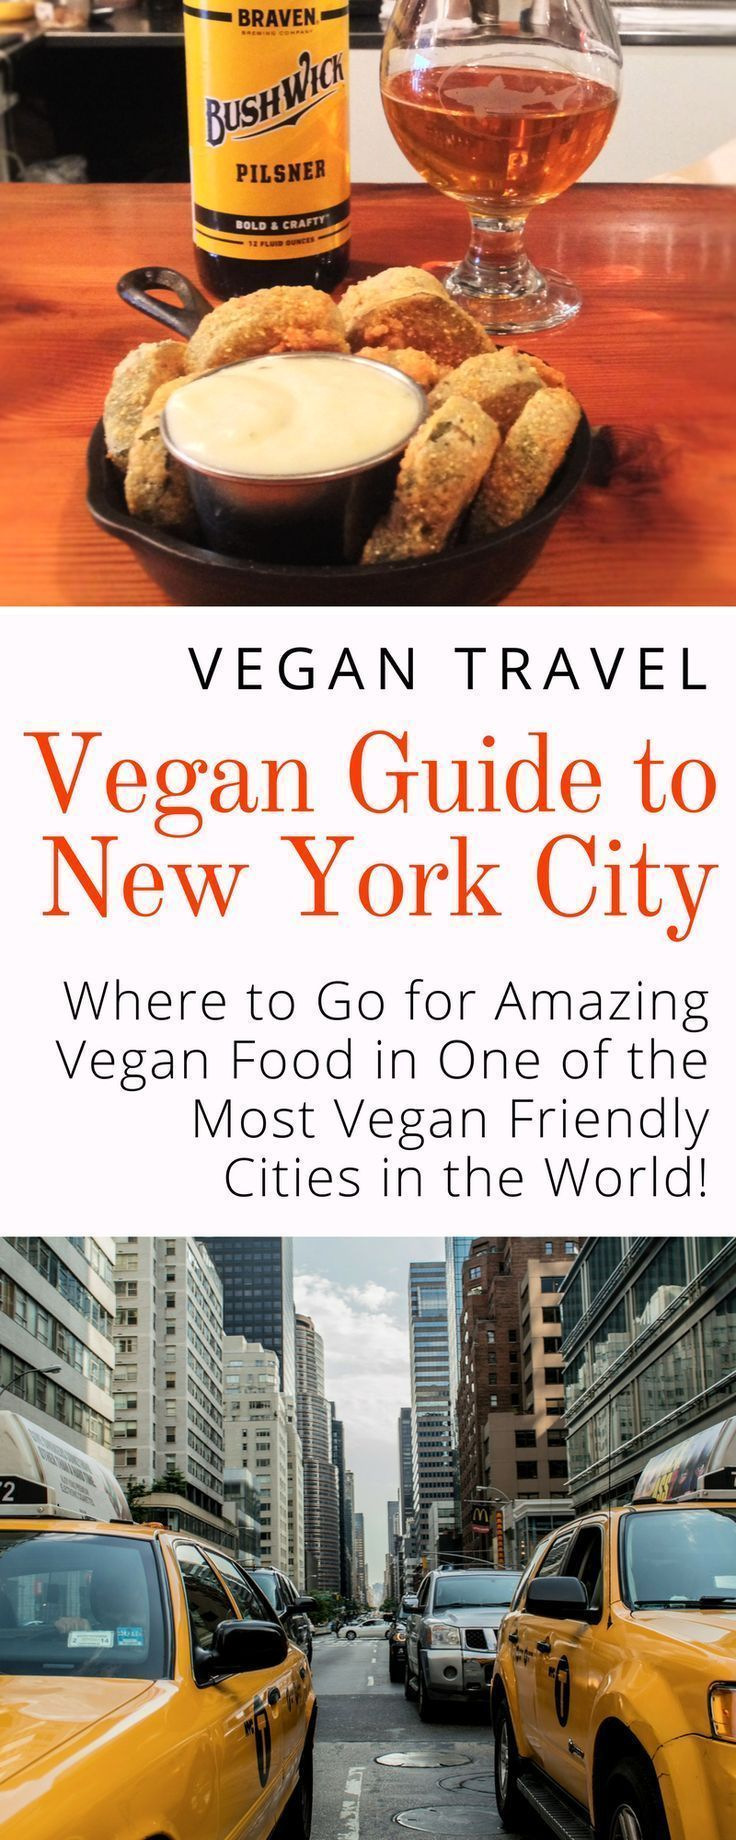 Some of the Best Vegan Food in New York City  Vegan Travel Guide is part of Some Of The Best Vegan Food In New York City Veggie Visa - I recently returned to the Big Apple for a few days  I made it my personal mission to eat as much of the best vegan food in New York City as I could fit into my belly  You see, when